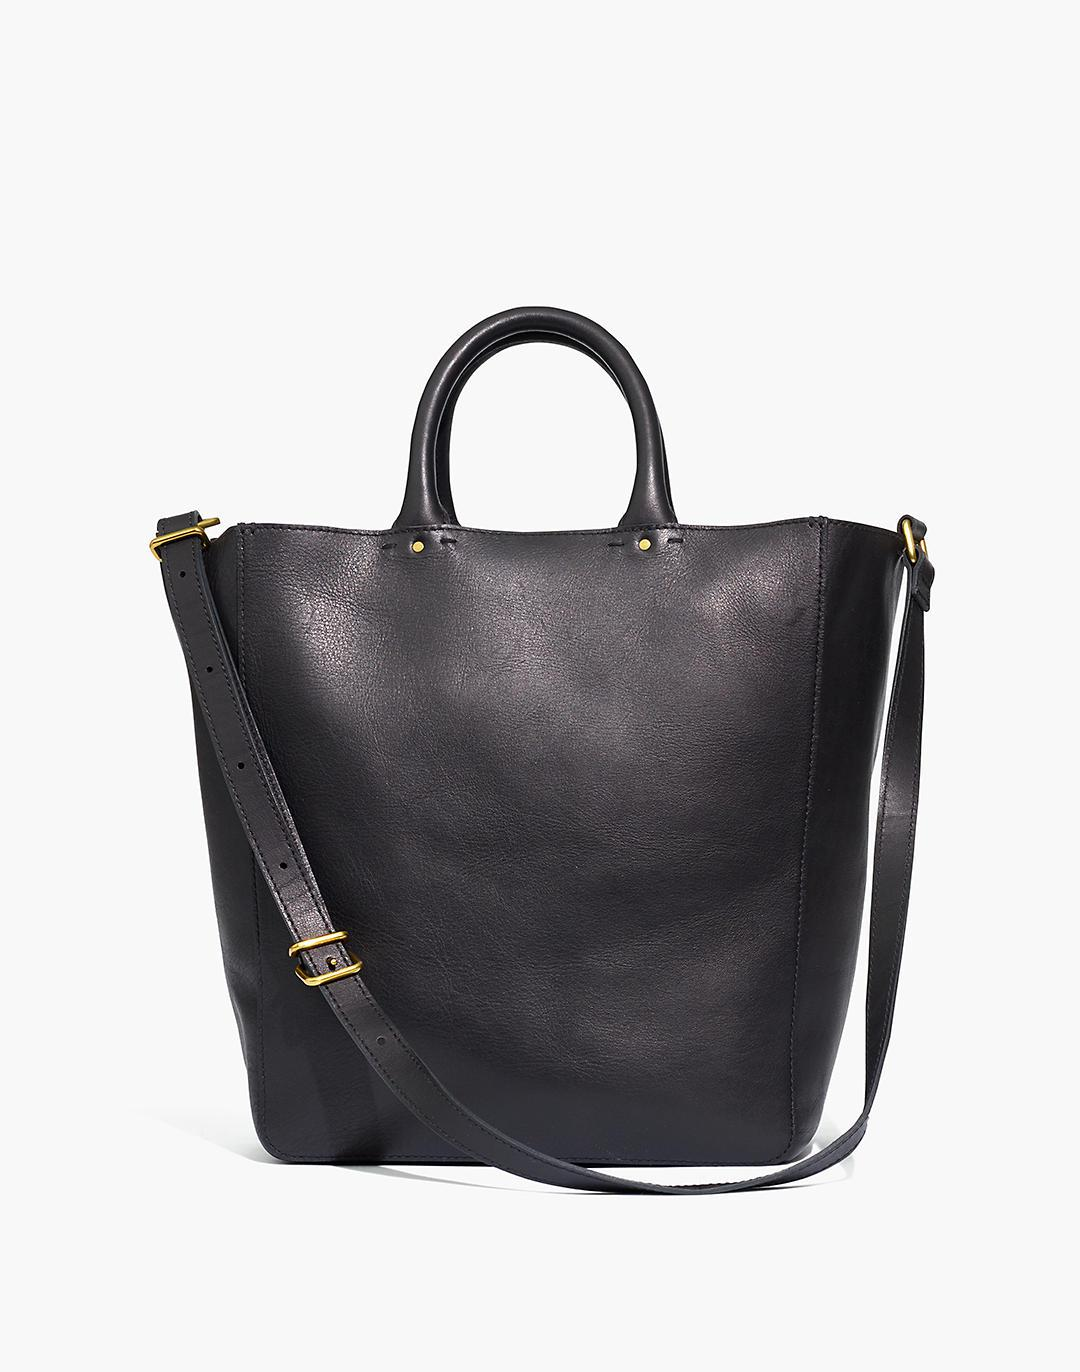 The Abroad Tote